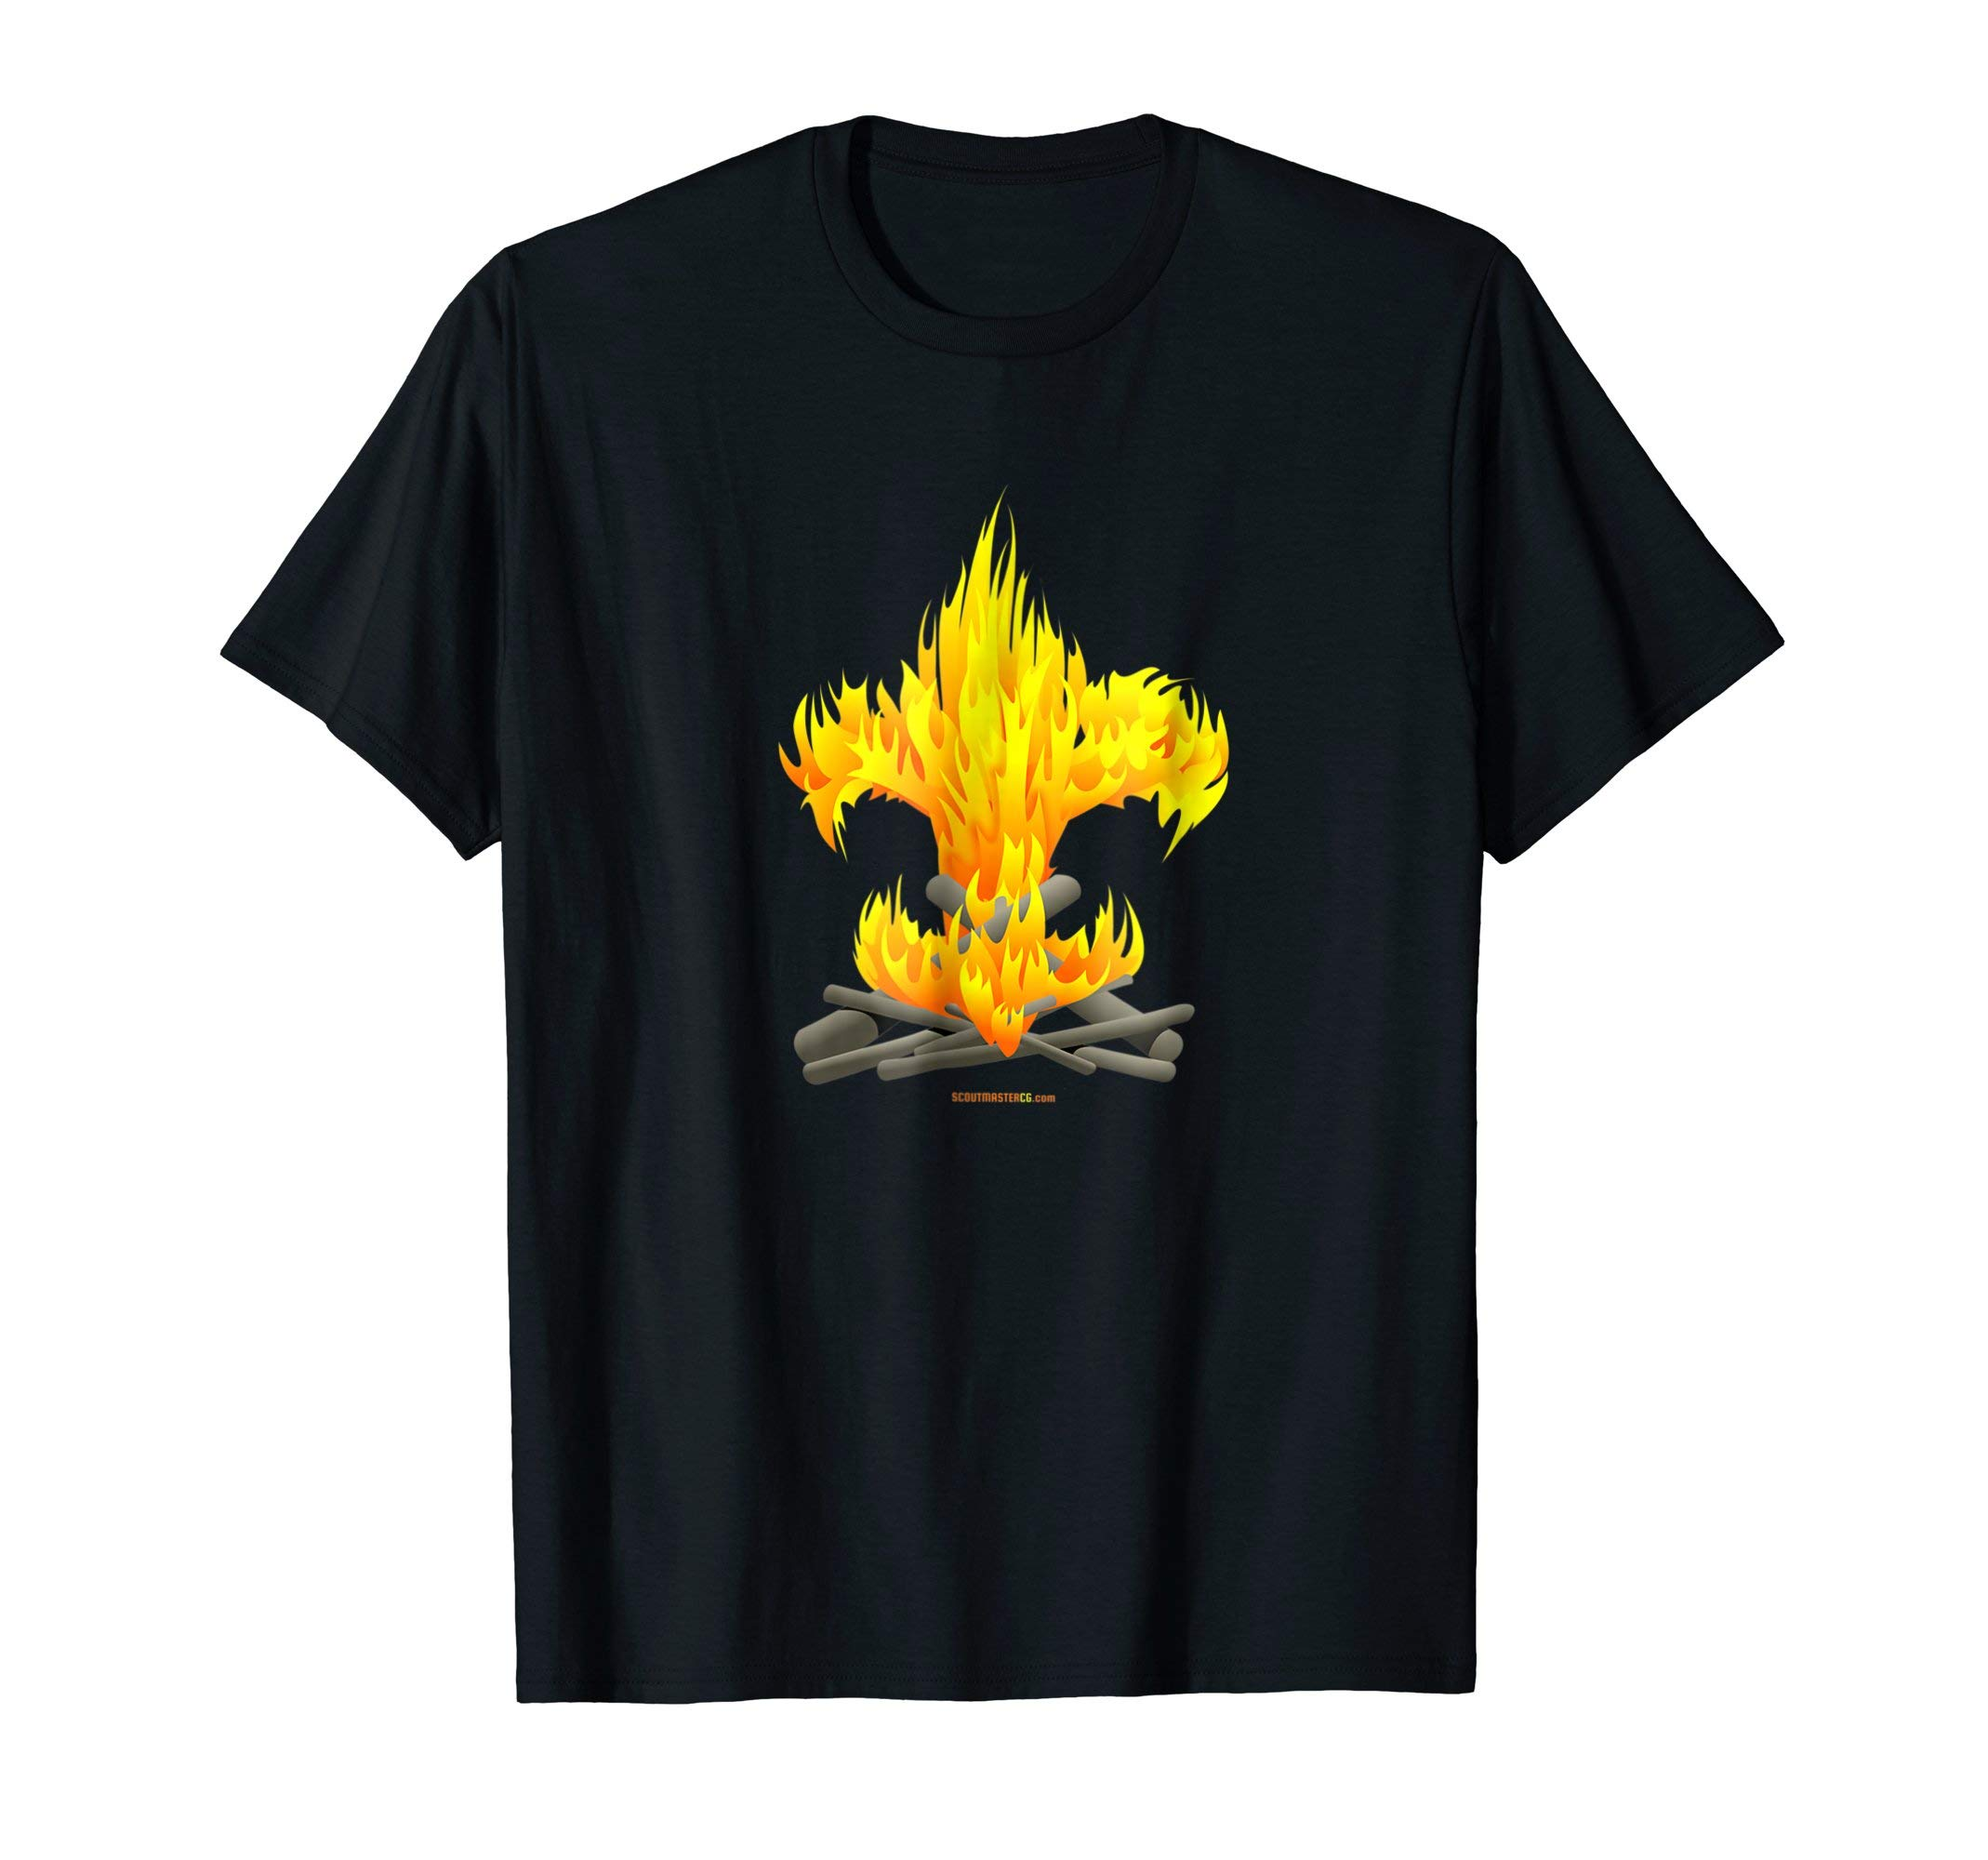 Fire Tee - Original Design by Scoutmastercg.com